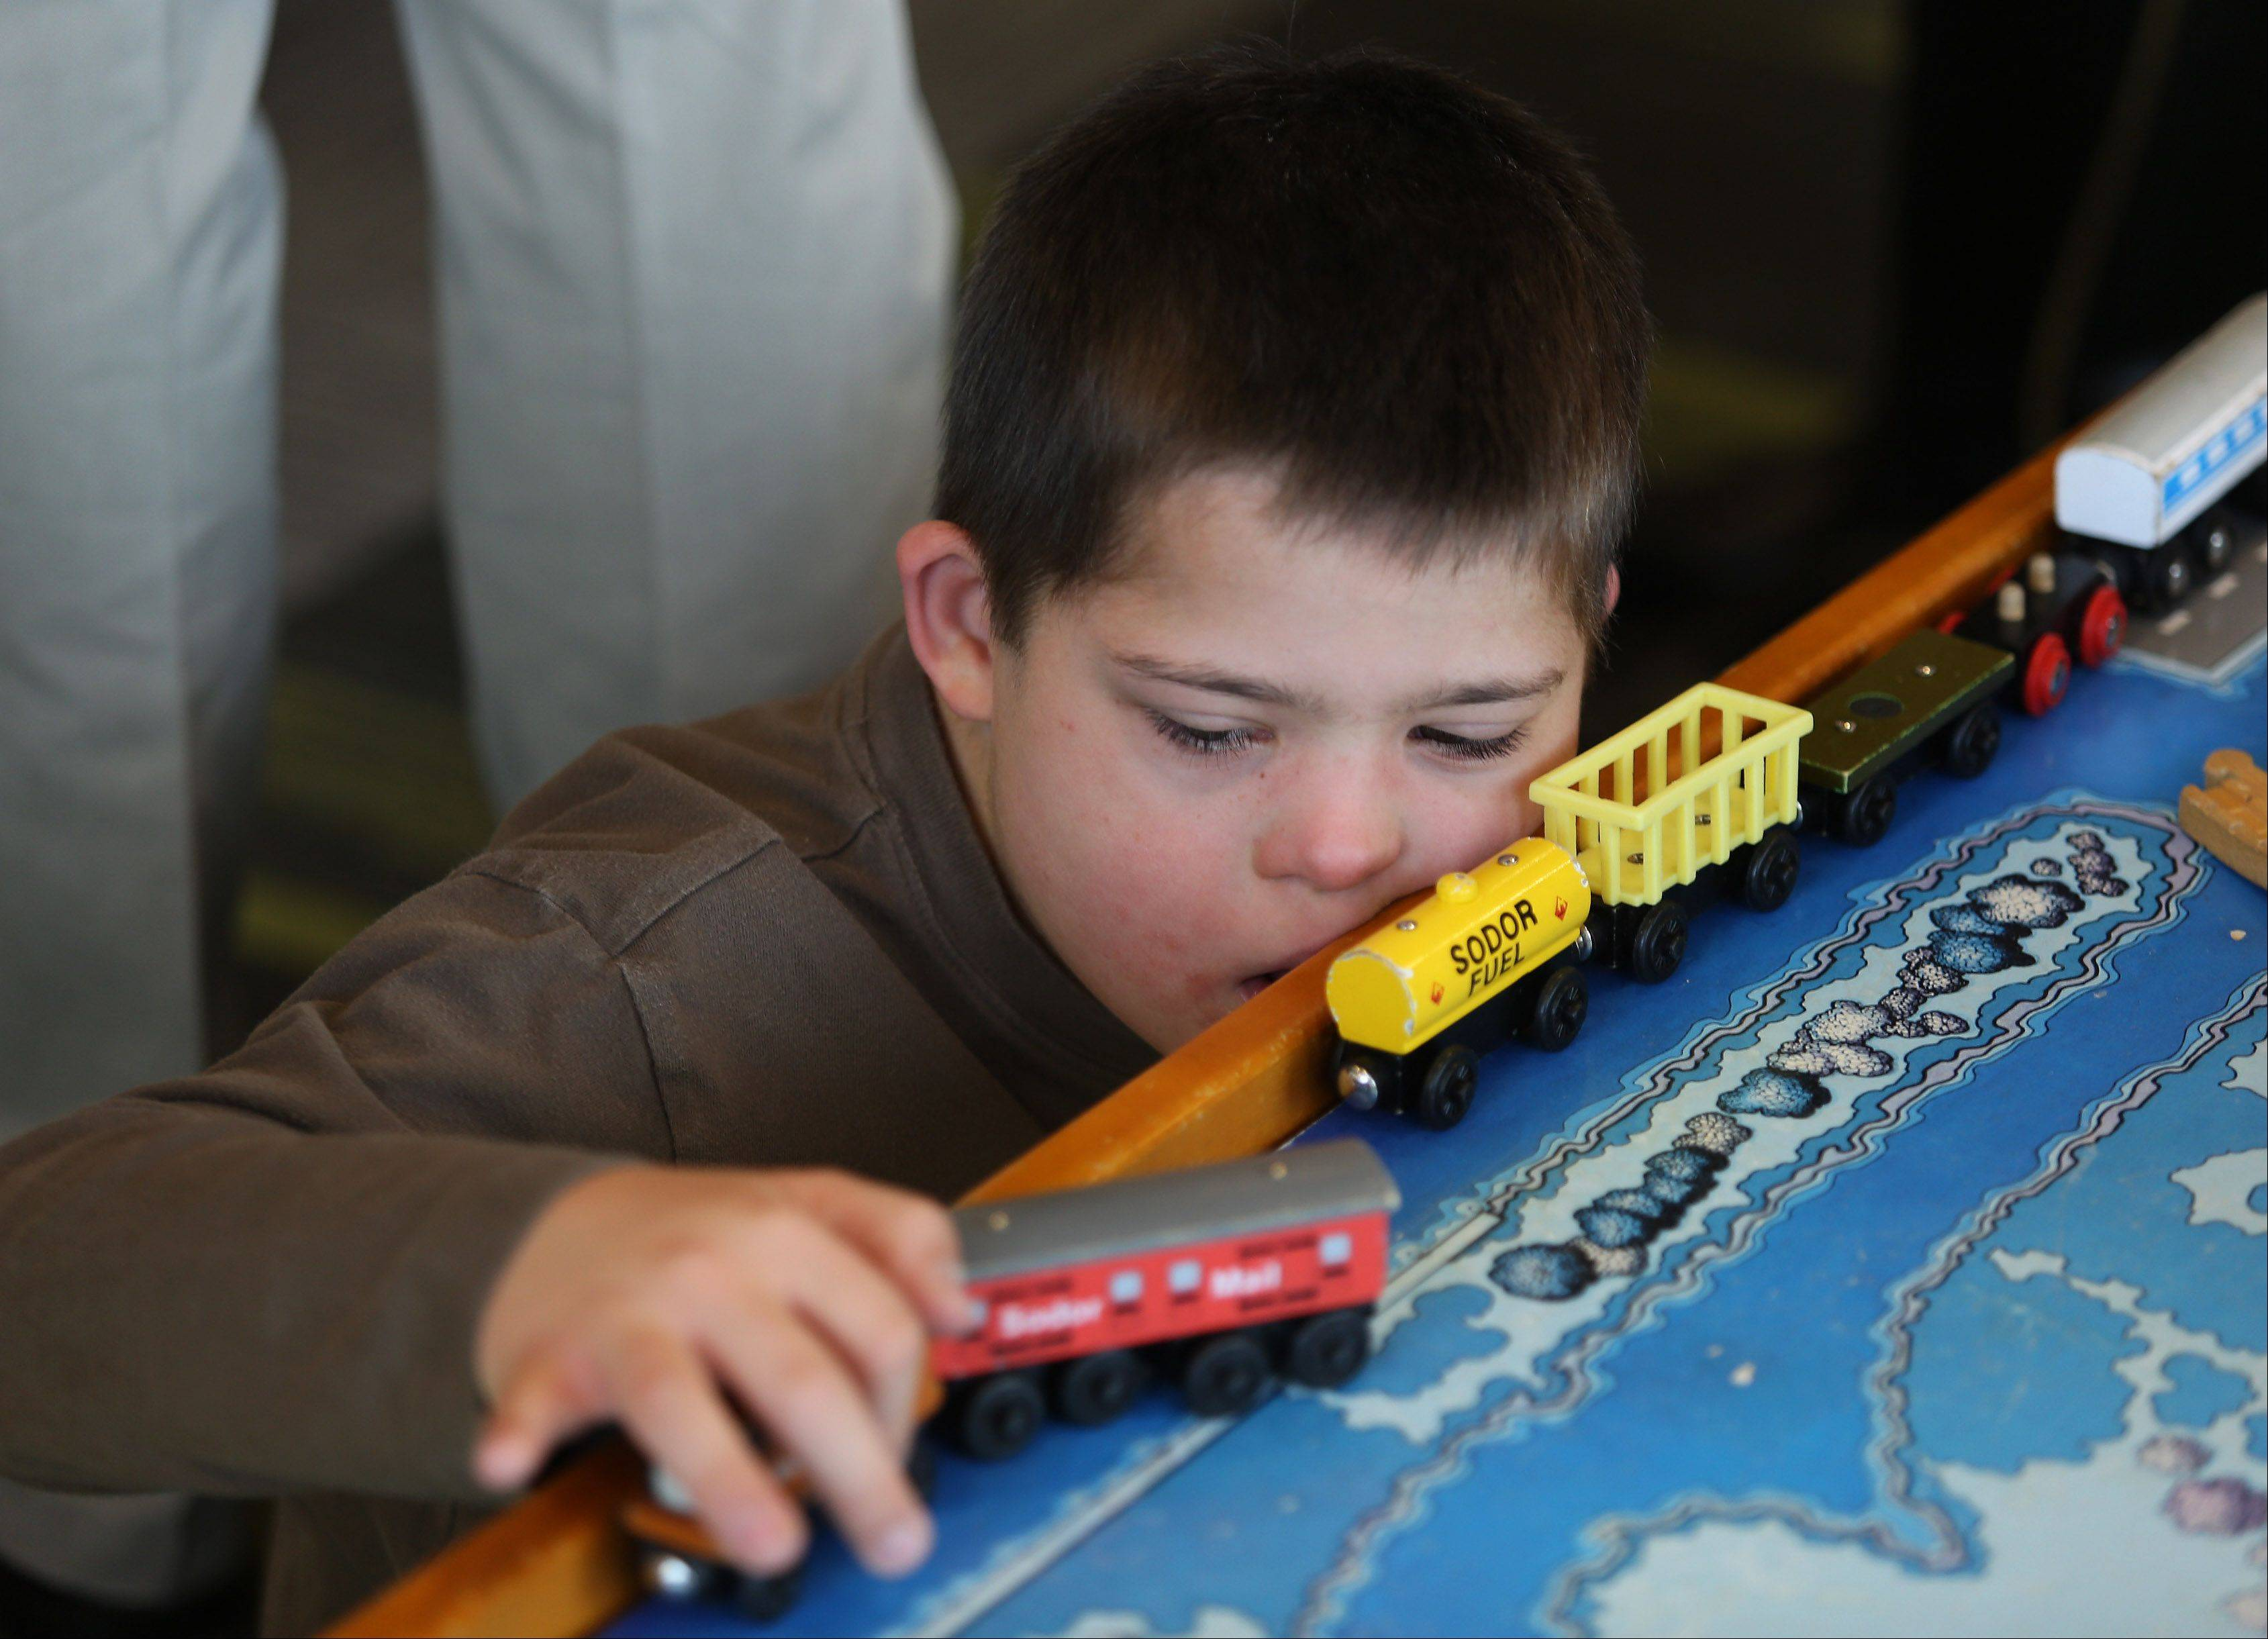 Caleb Tameling, 8, of Lombard plays with a train set Sunday during the grand opening of GiGi's Playhouse National Achievement Center in Hoffman Estates. The awareness and resource center provides programs for children and adults with Down syndrome.